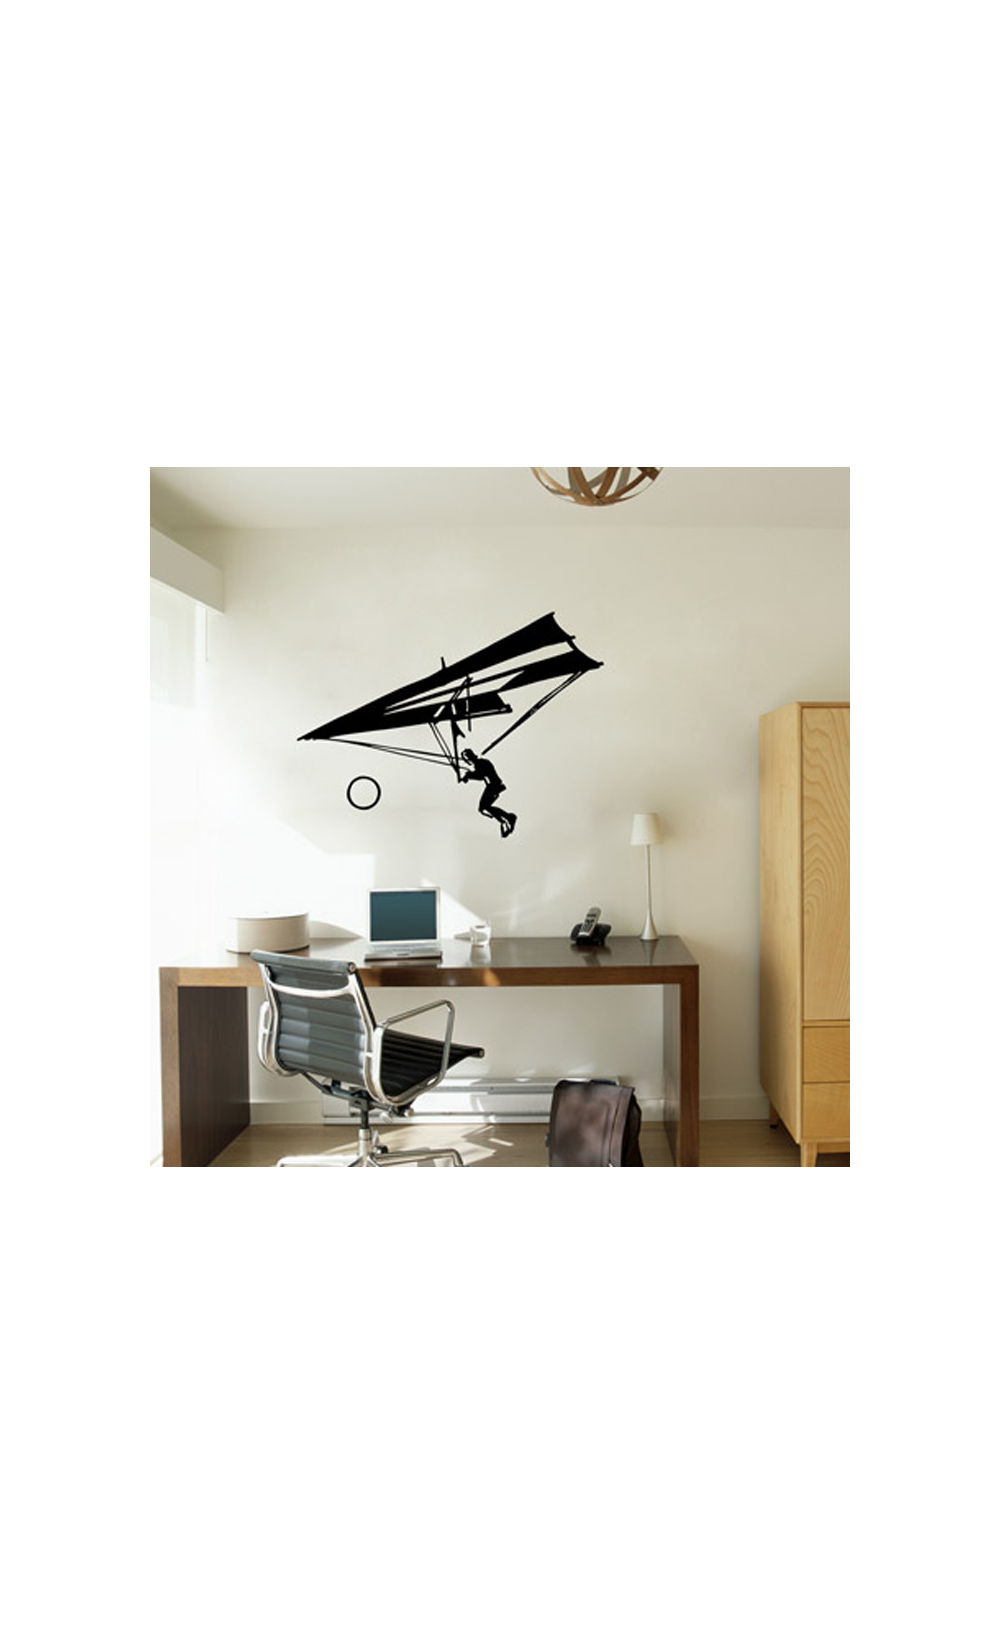 sticker mural pour d corer son int rieur petit prix mod le deltaplane. Black Bedroom Furniture Sets. Home Design Ideas